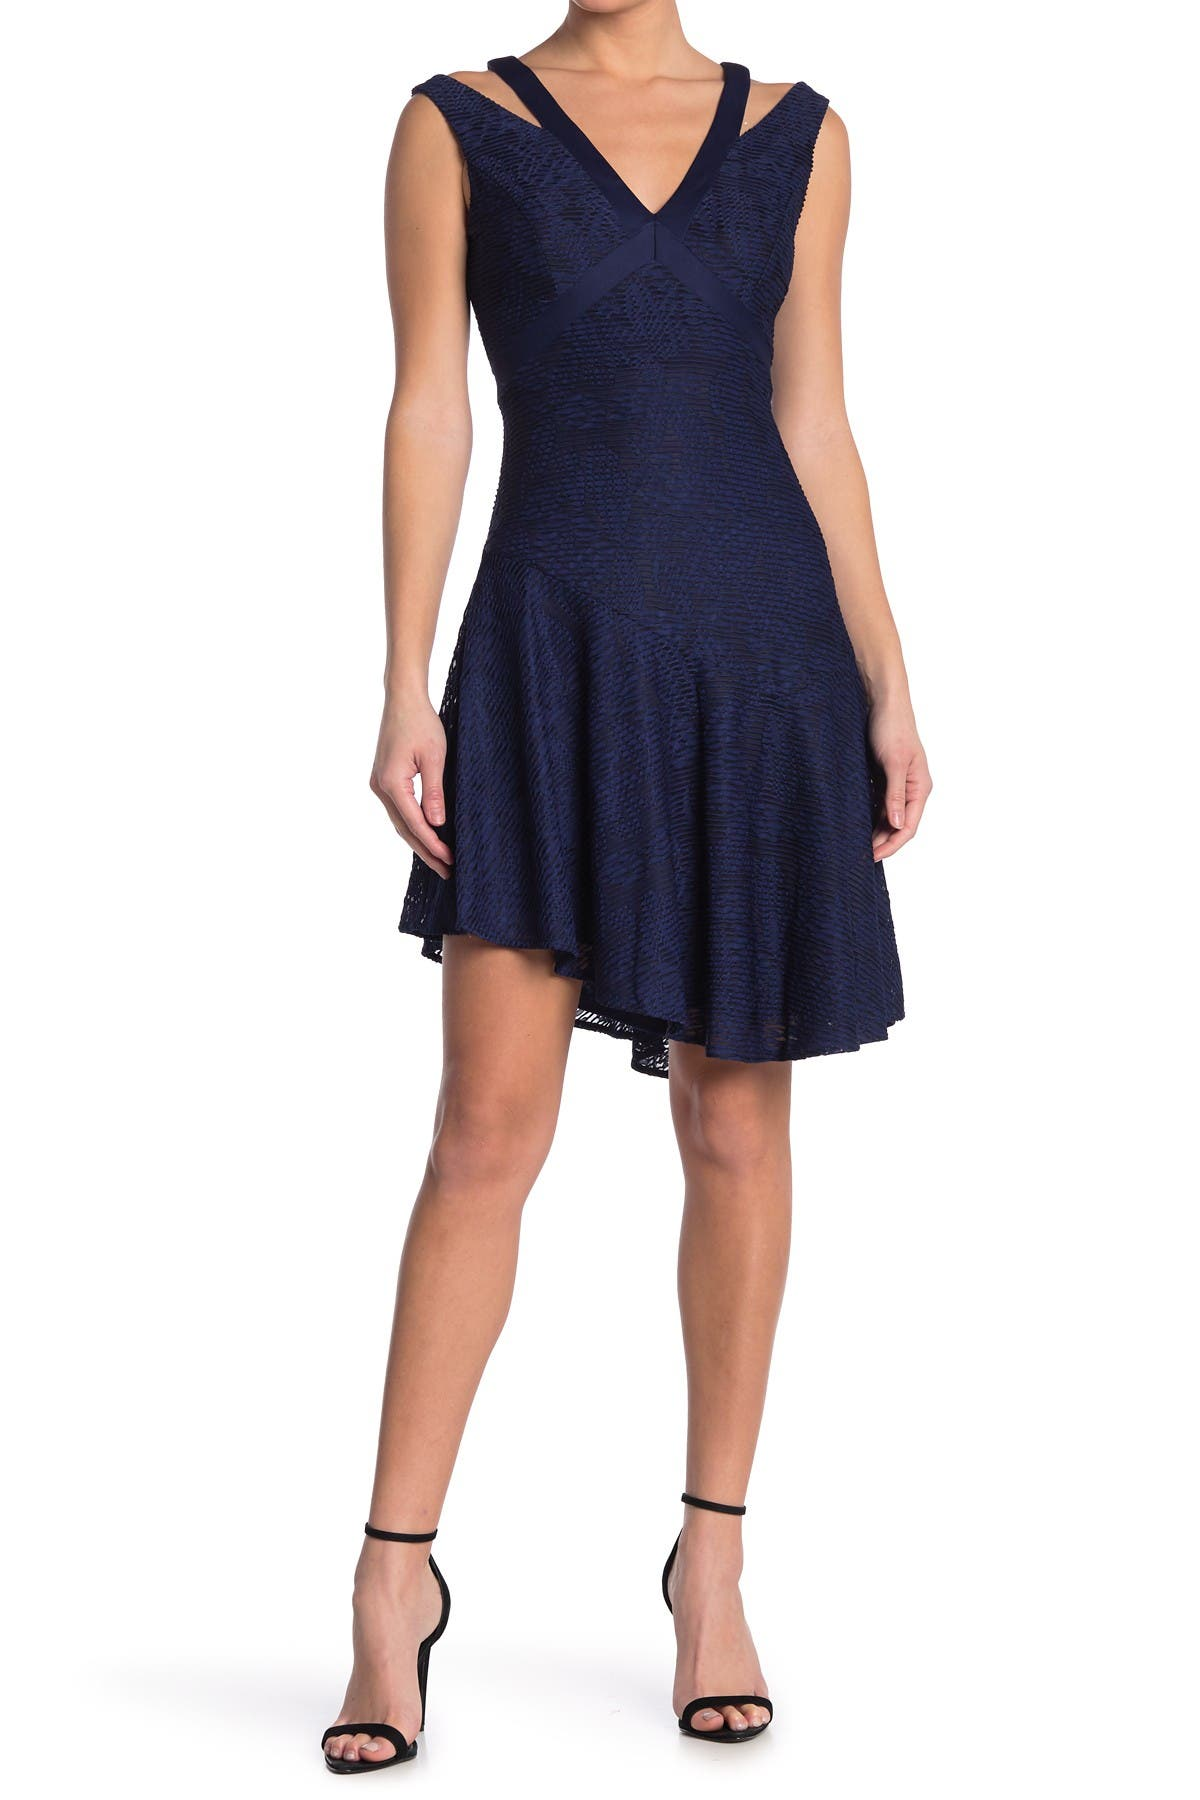 Image of GUESS Asymmetrical Flounce Hem Lacy Dress